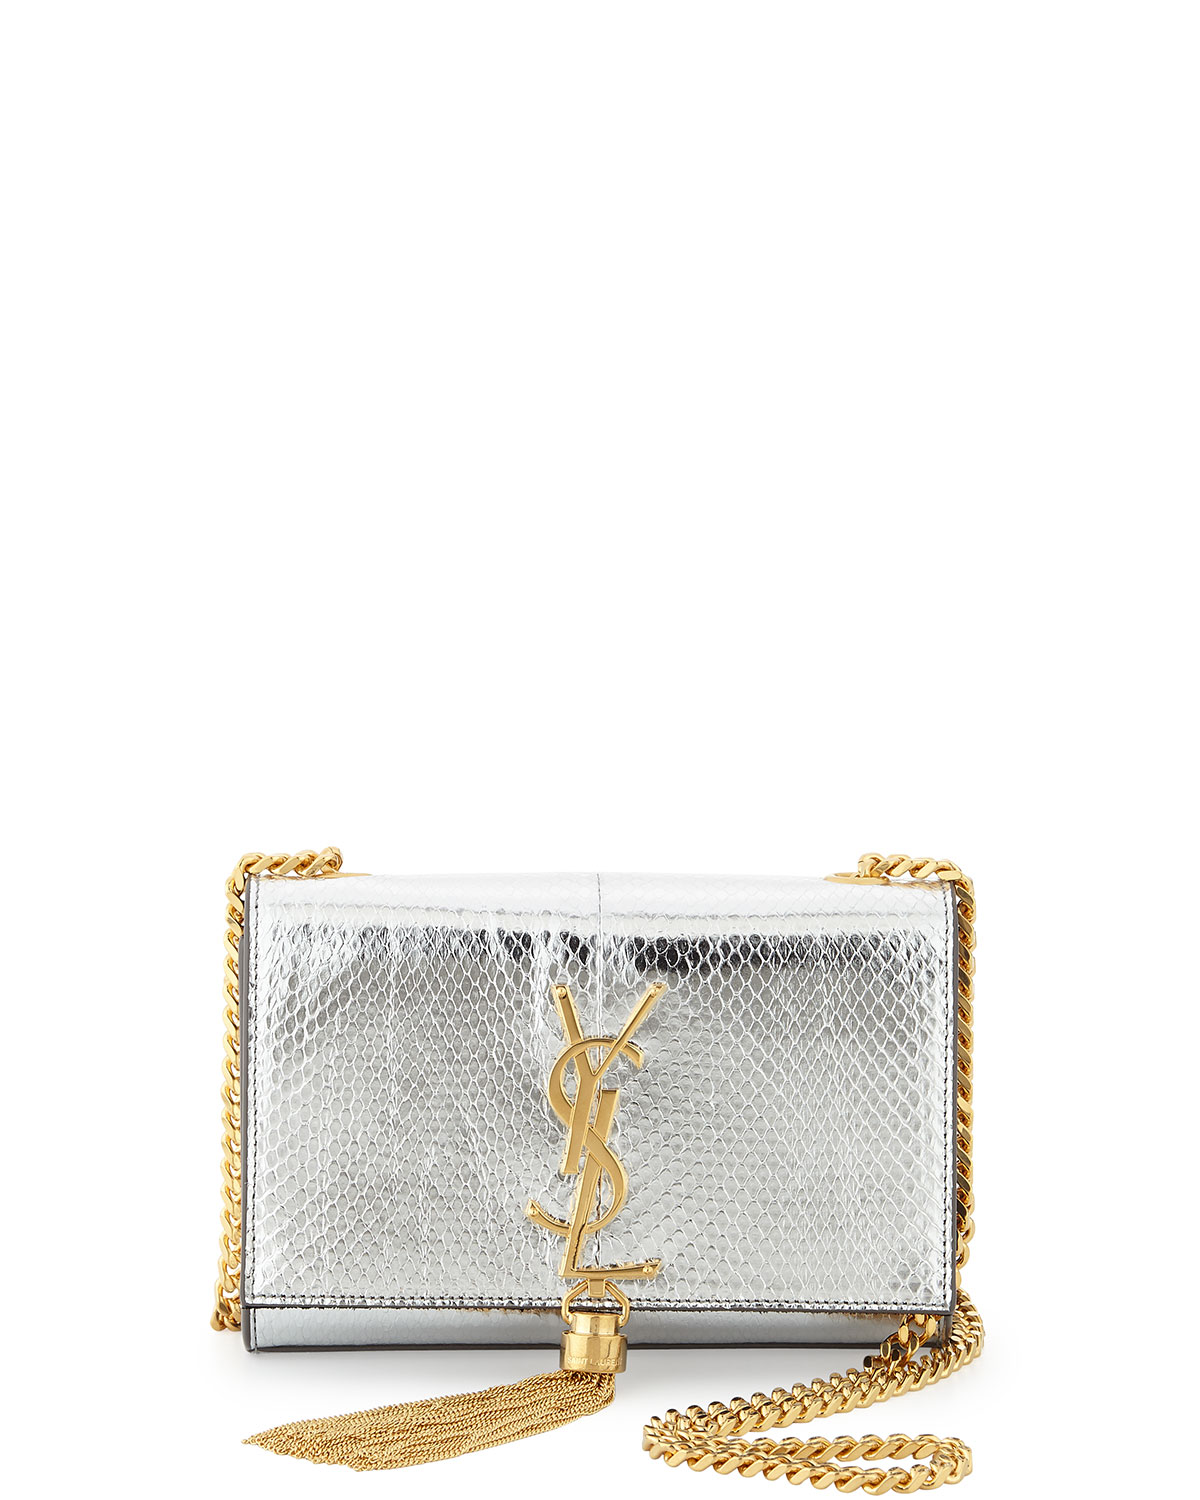 Yves Saint Laurent Cassandre Small Metallic Python Crossbody Bag, Python, Women's, Size: S, Silver